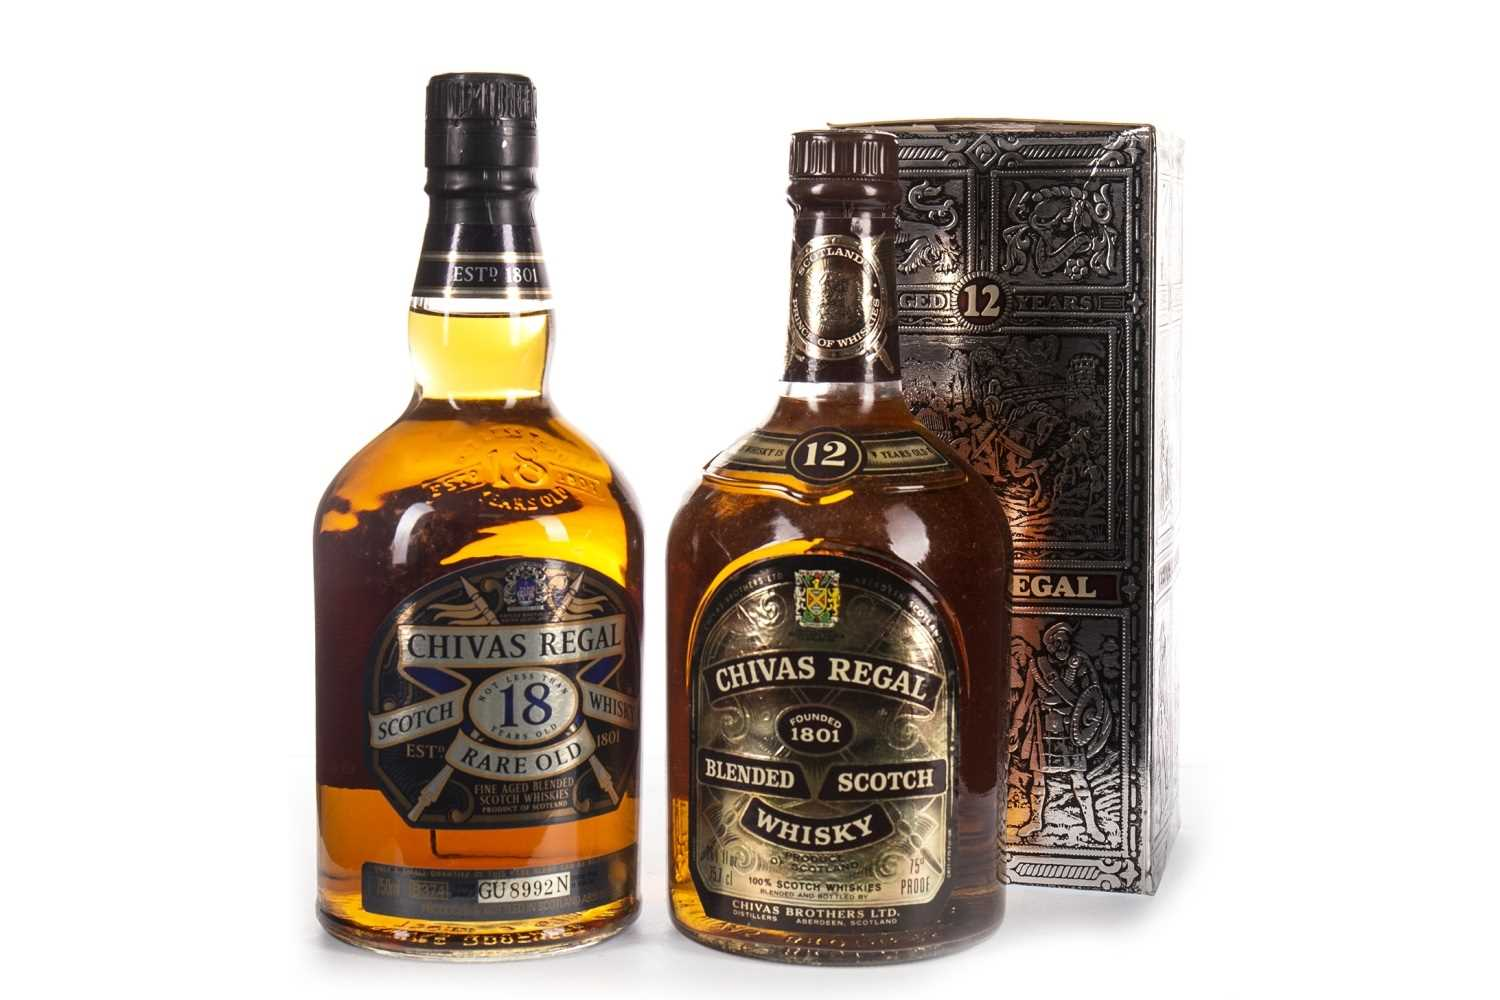 Lot 423-CHIVAS REGAL RARE OLD 18 YEARS OLD & CHIVAS REGAL 12 YEARS OLD